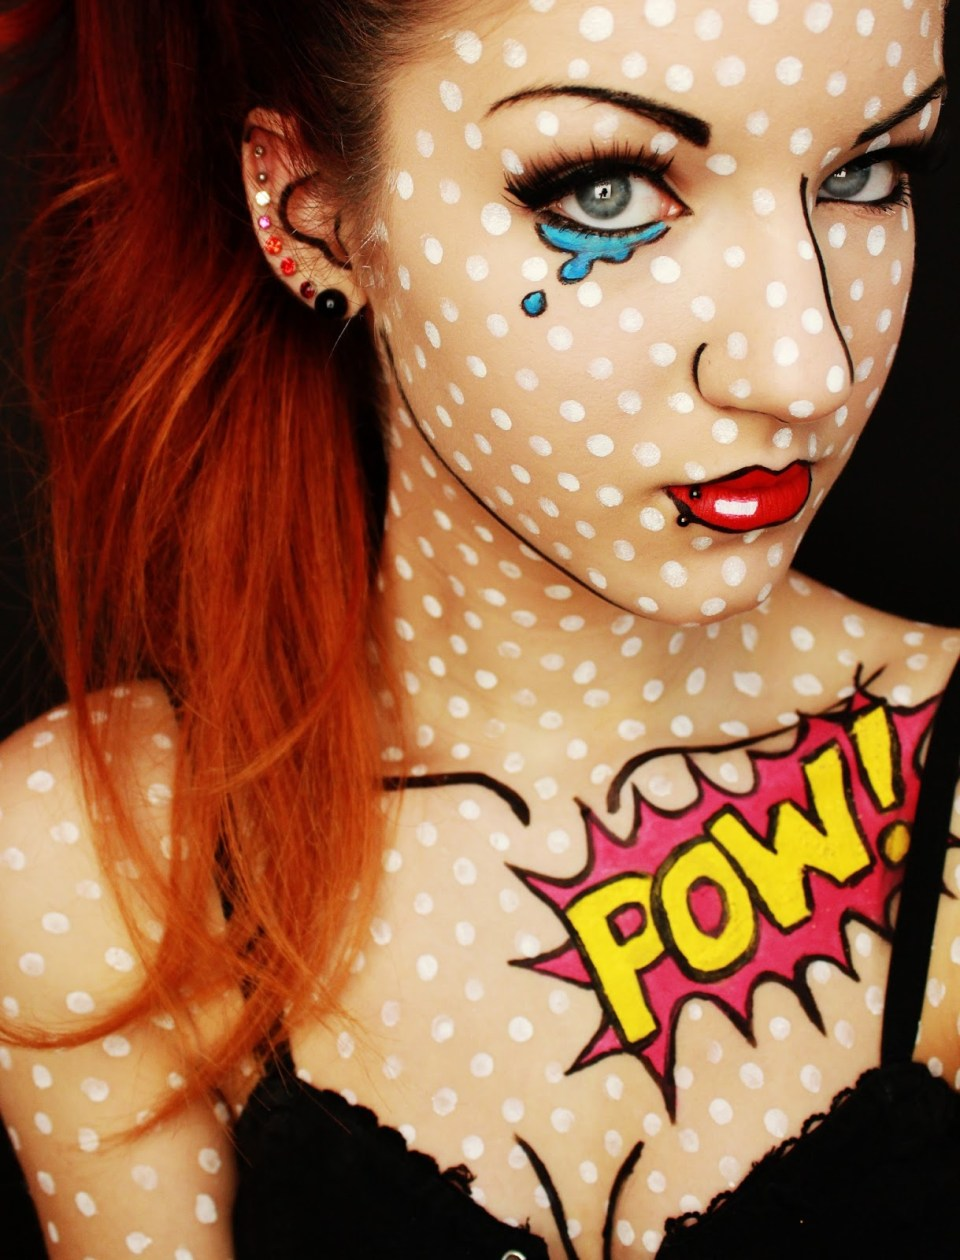 Girl with makeup for halloween as pop art